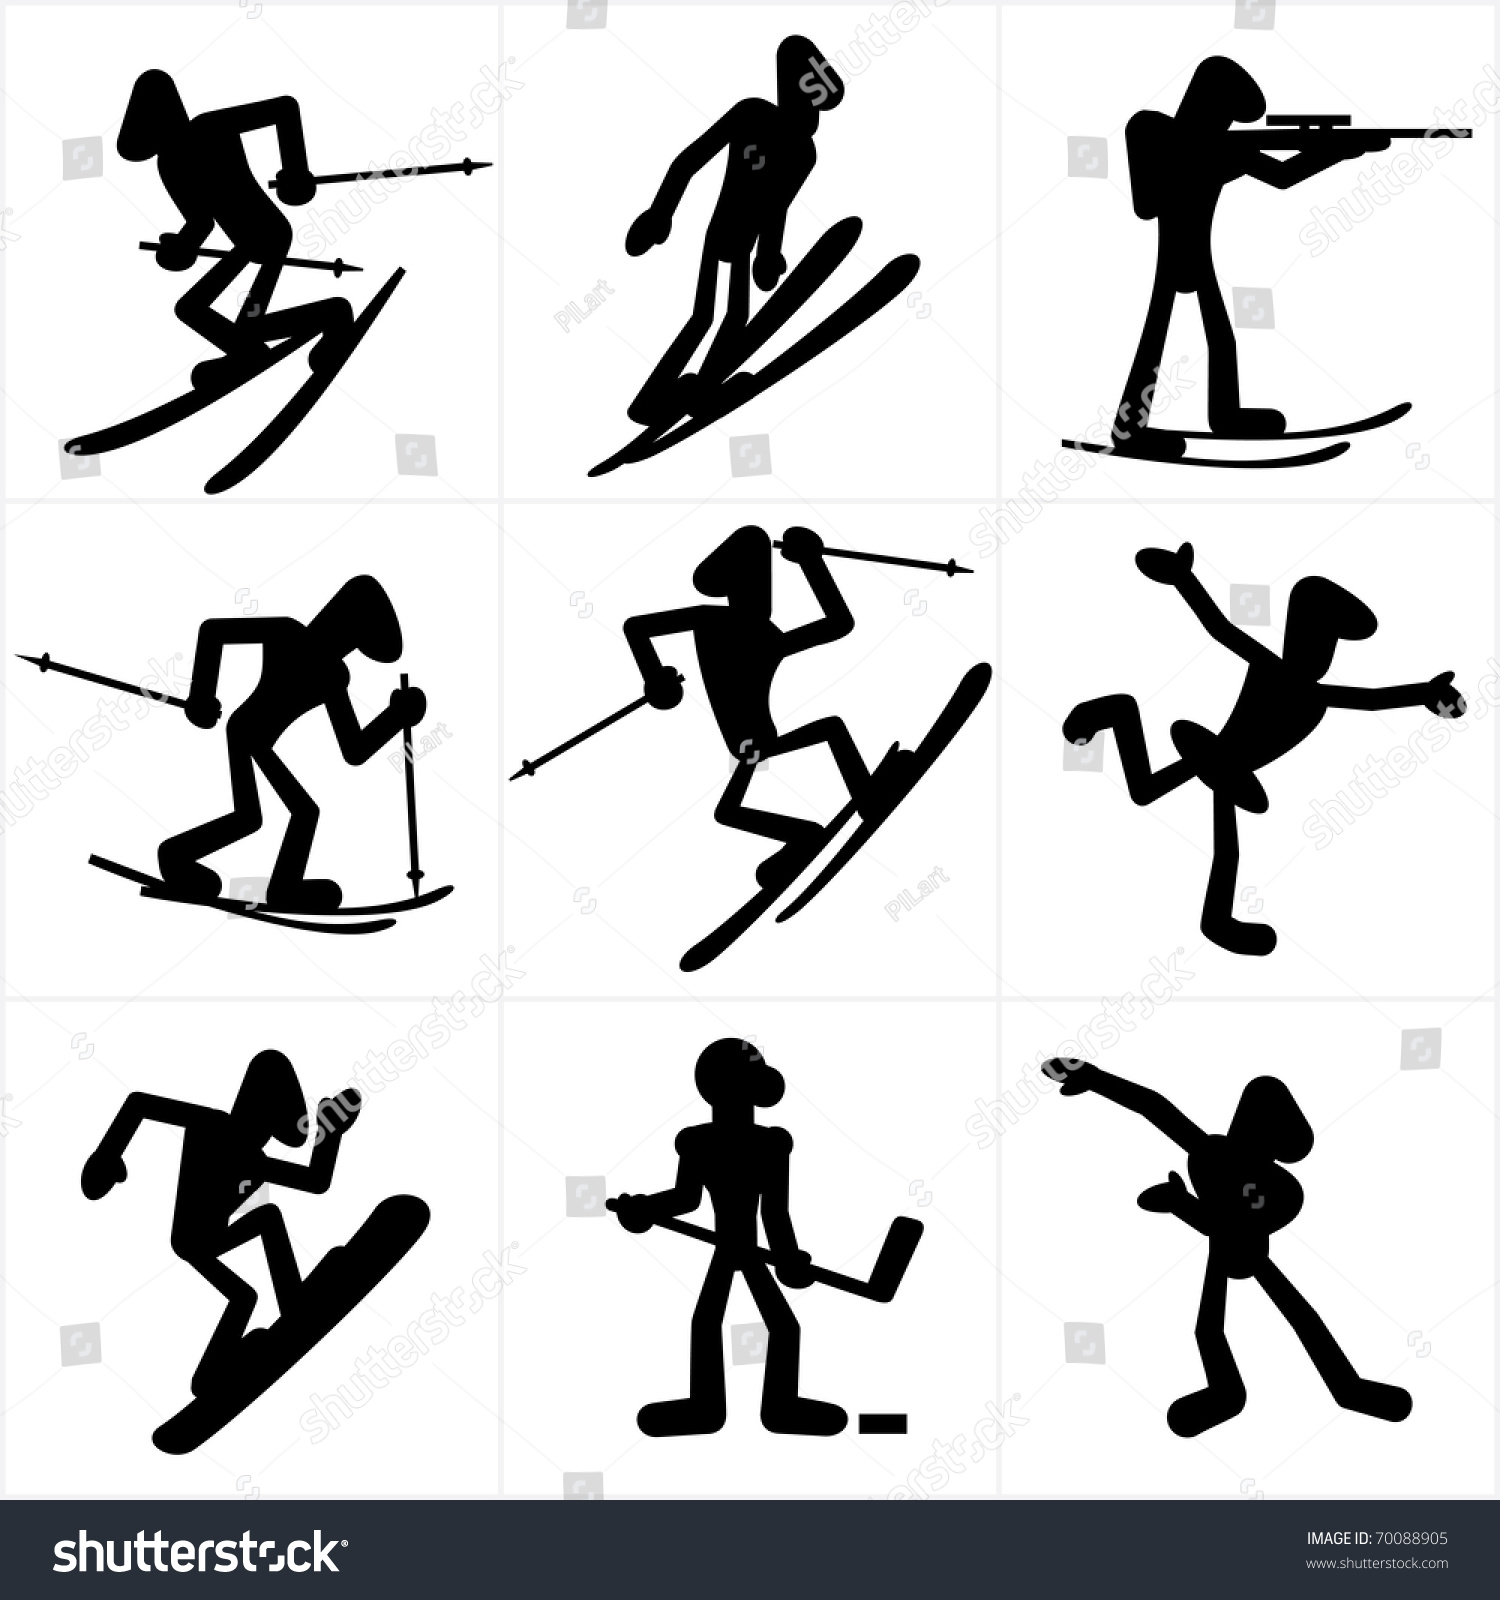 Cartoon Icons Winter Olympic Games Sports Stock Vector 70088905 ...